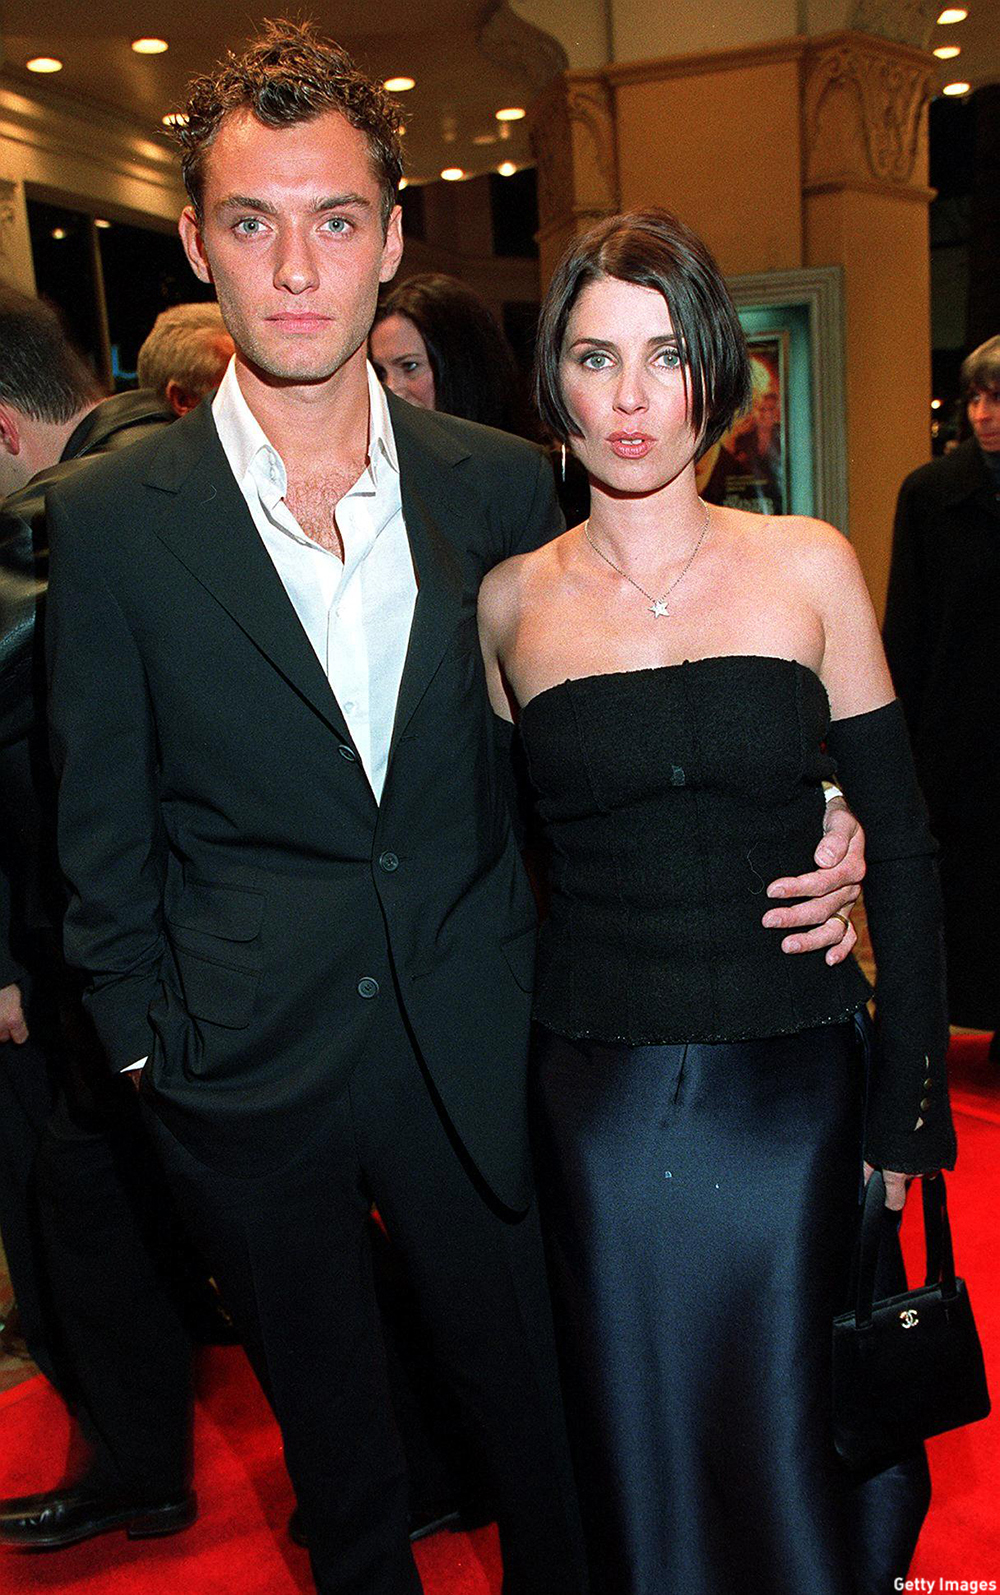 Jude Law and then wife Sadie Frost attend the premiere of 'Talented Mr. Ripley' in 1999. (Photo: Getty Images)